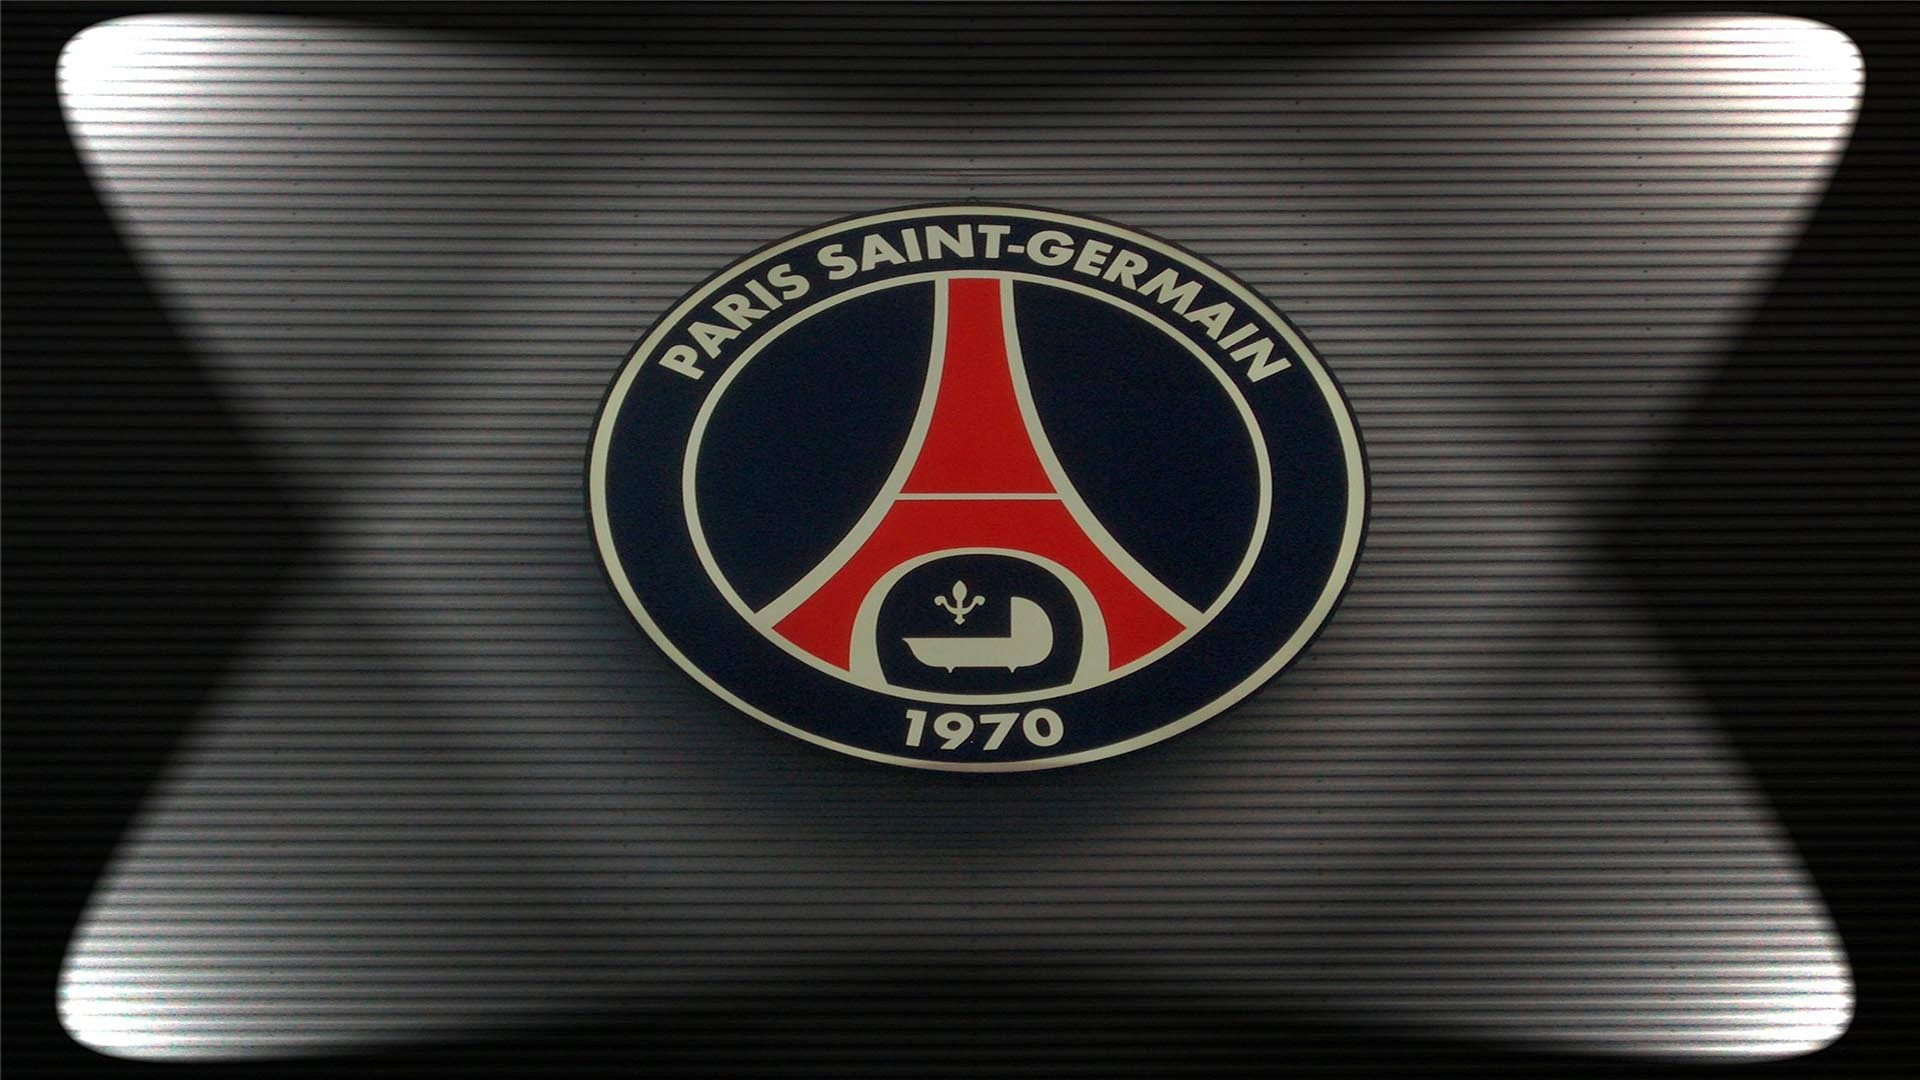 psg-pack-1080p-hd-by-Flint-London-wallpaper-wp3809567